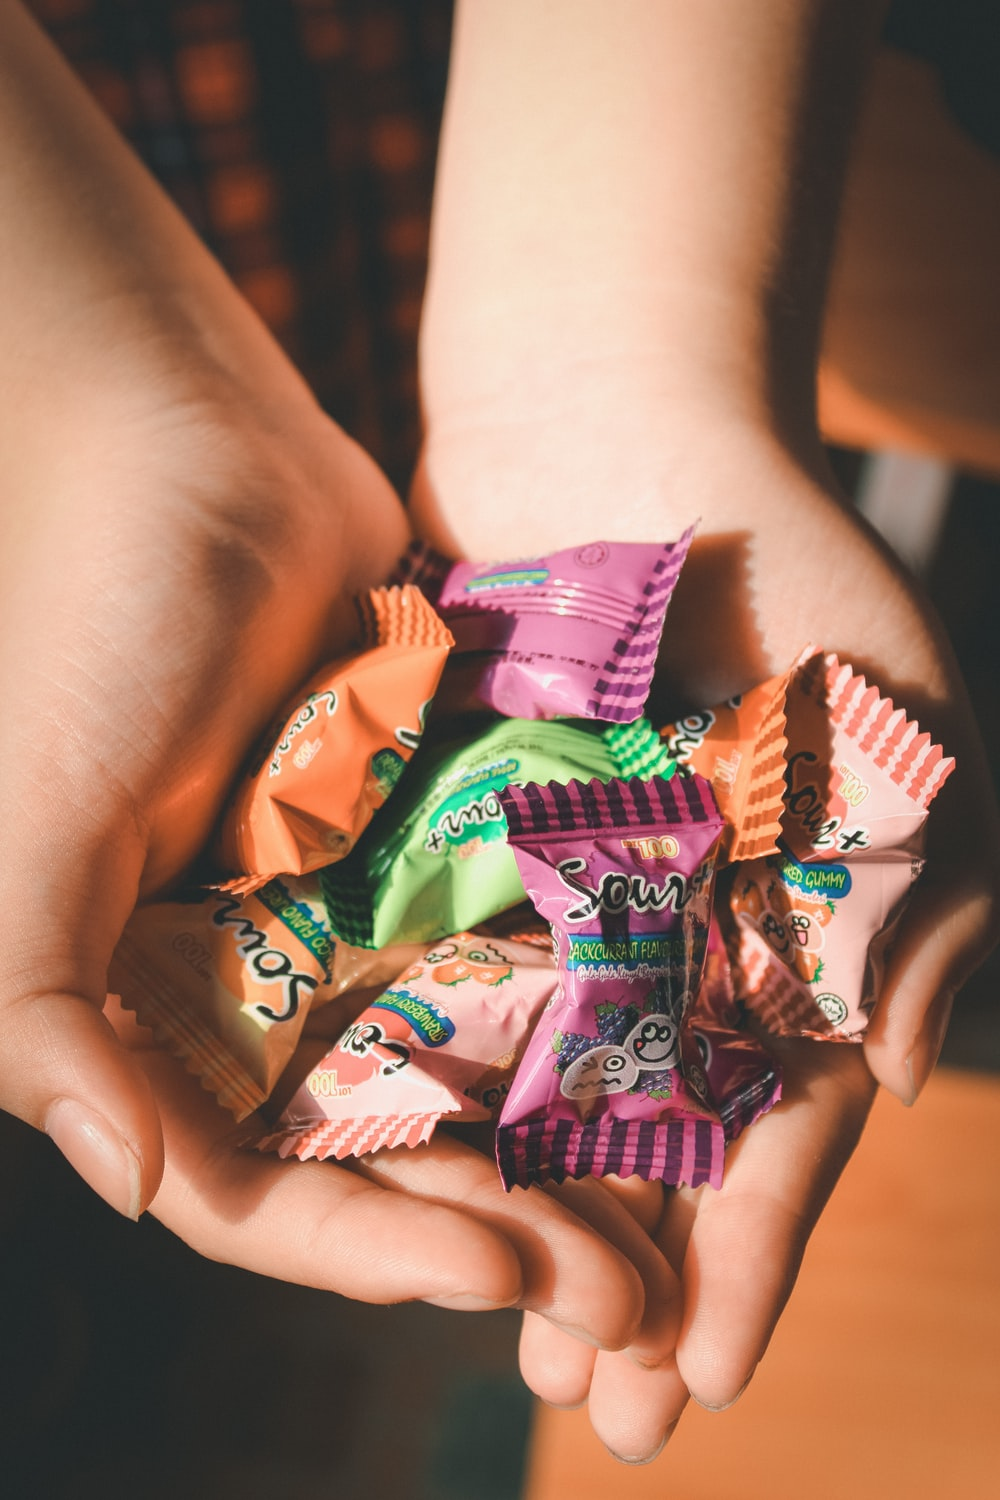 person holding packs of candy